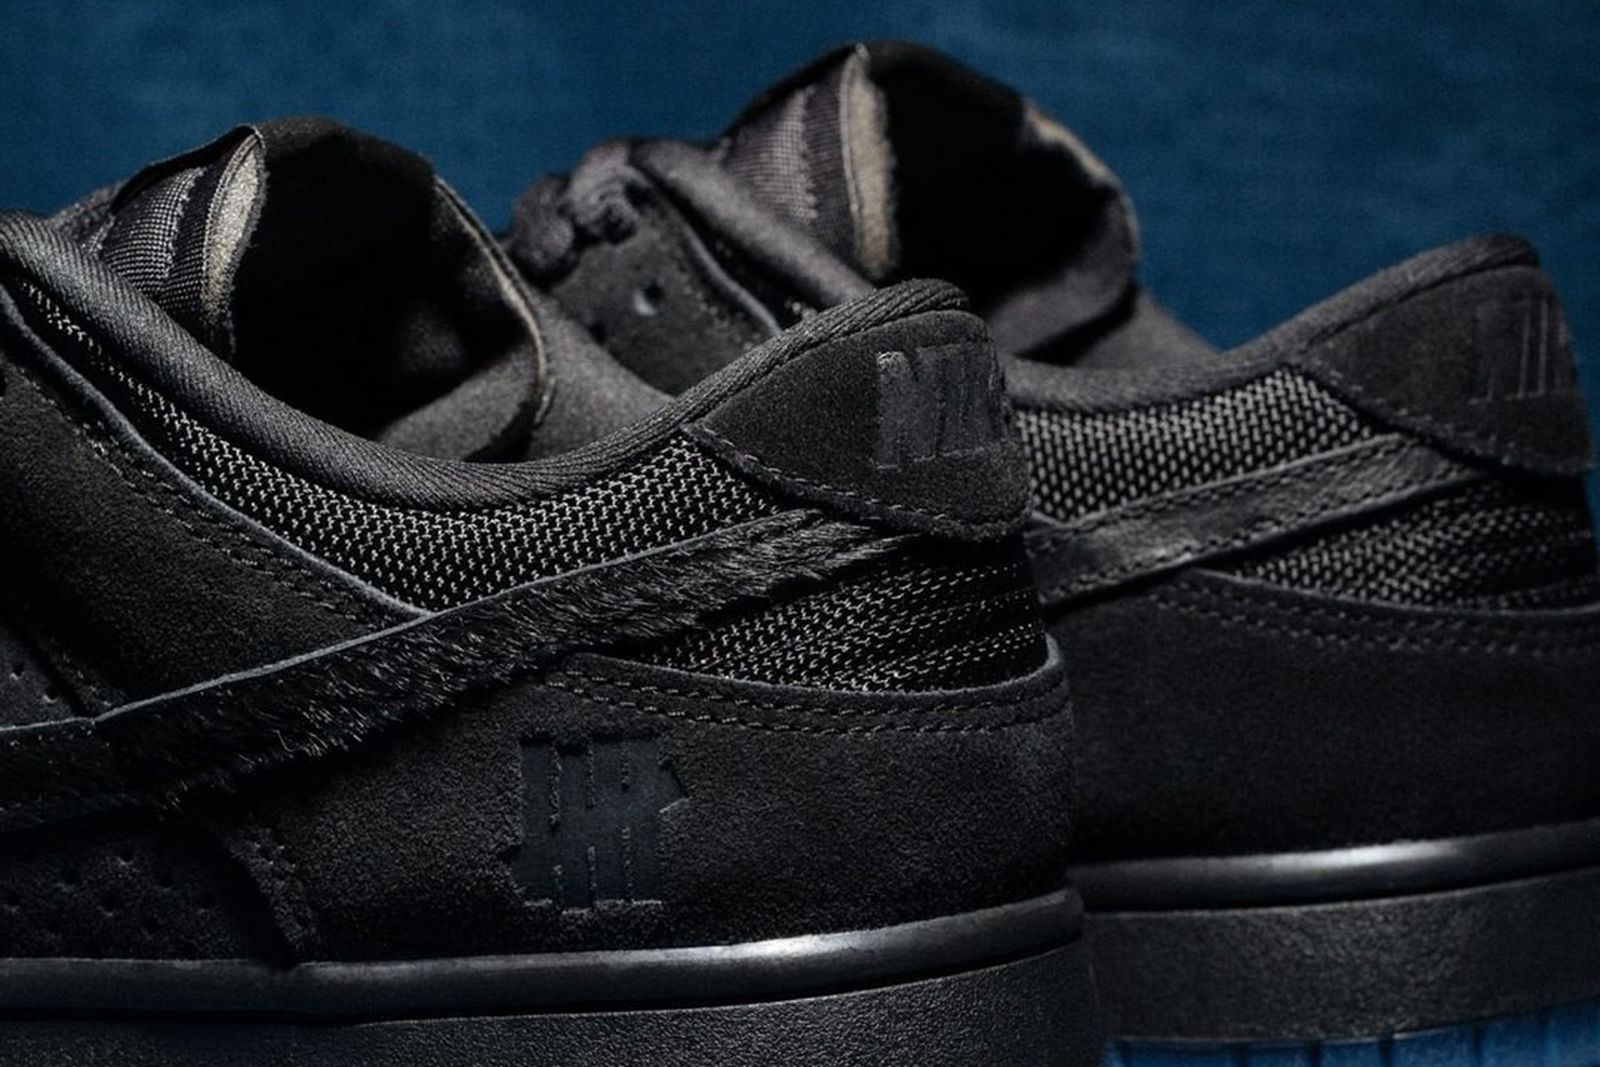 undefeated-nike-air-force-1-low-ballistic-release-date-price-07